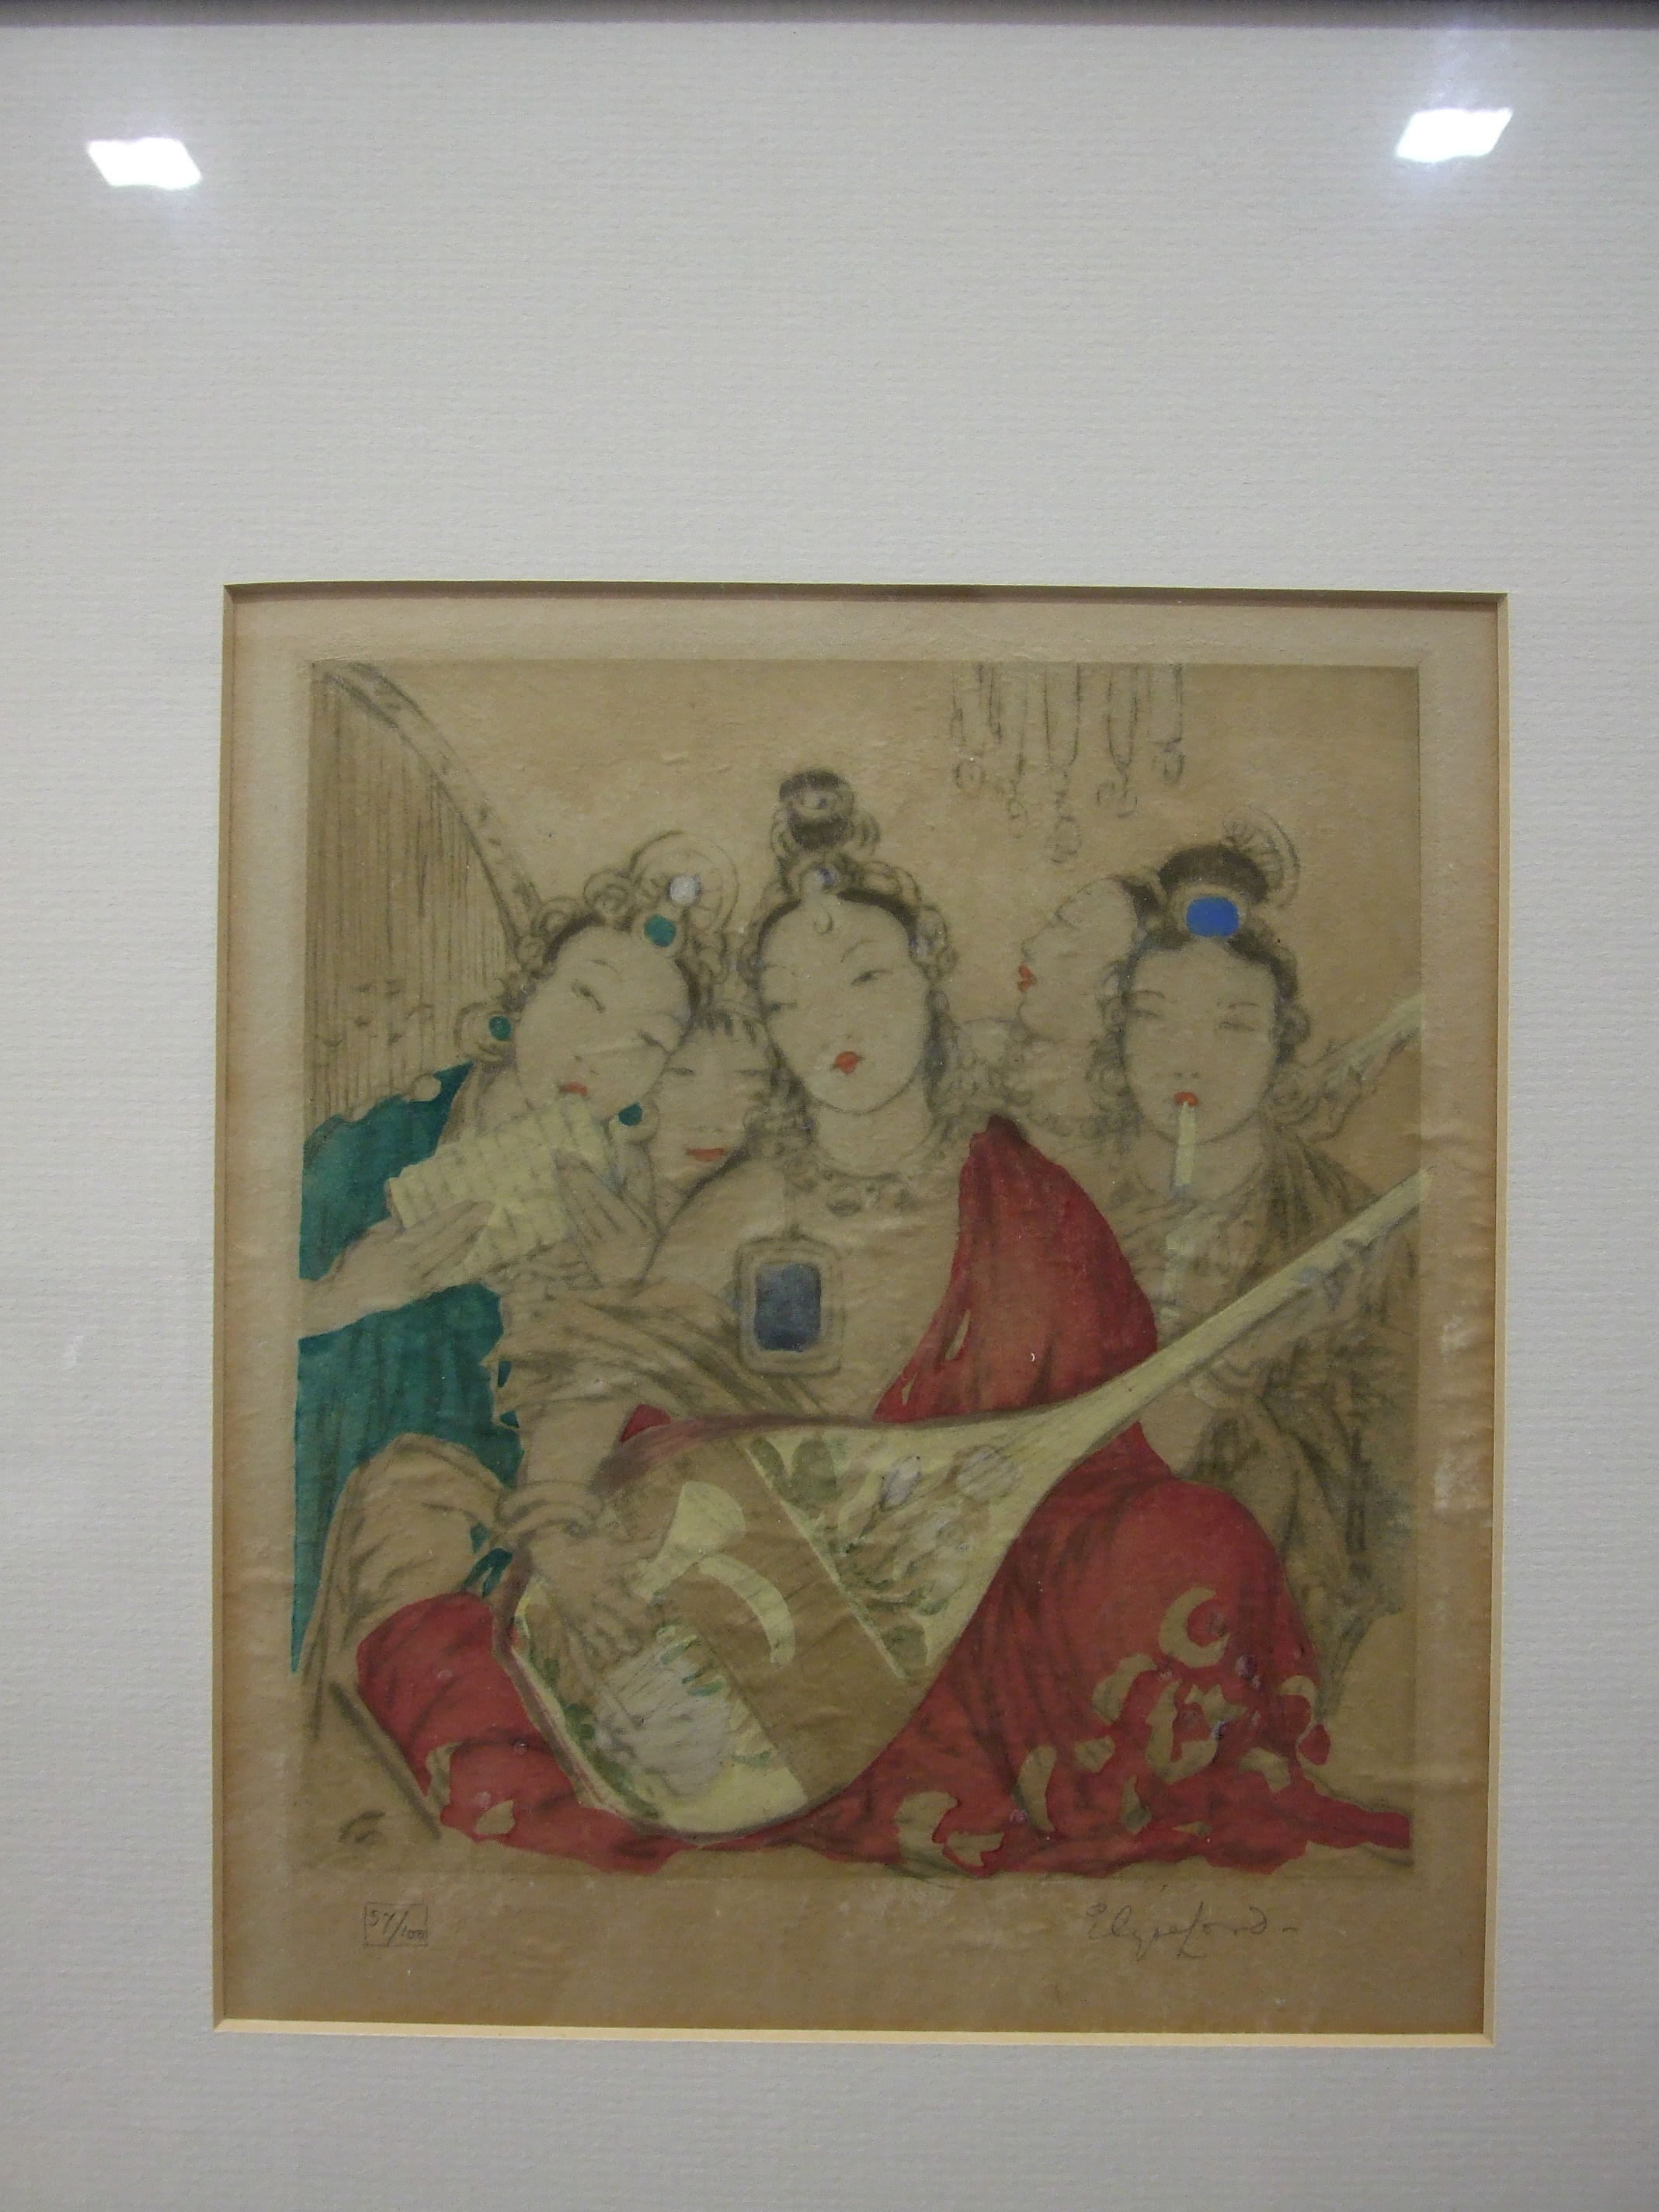 Lot 45 - •Elyse Ashe Lord RI (1900-1971), 'Oriental Musicians', hand-coloured etching, signed in pencil on